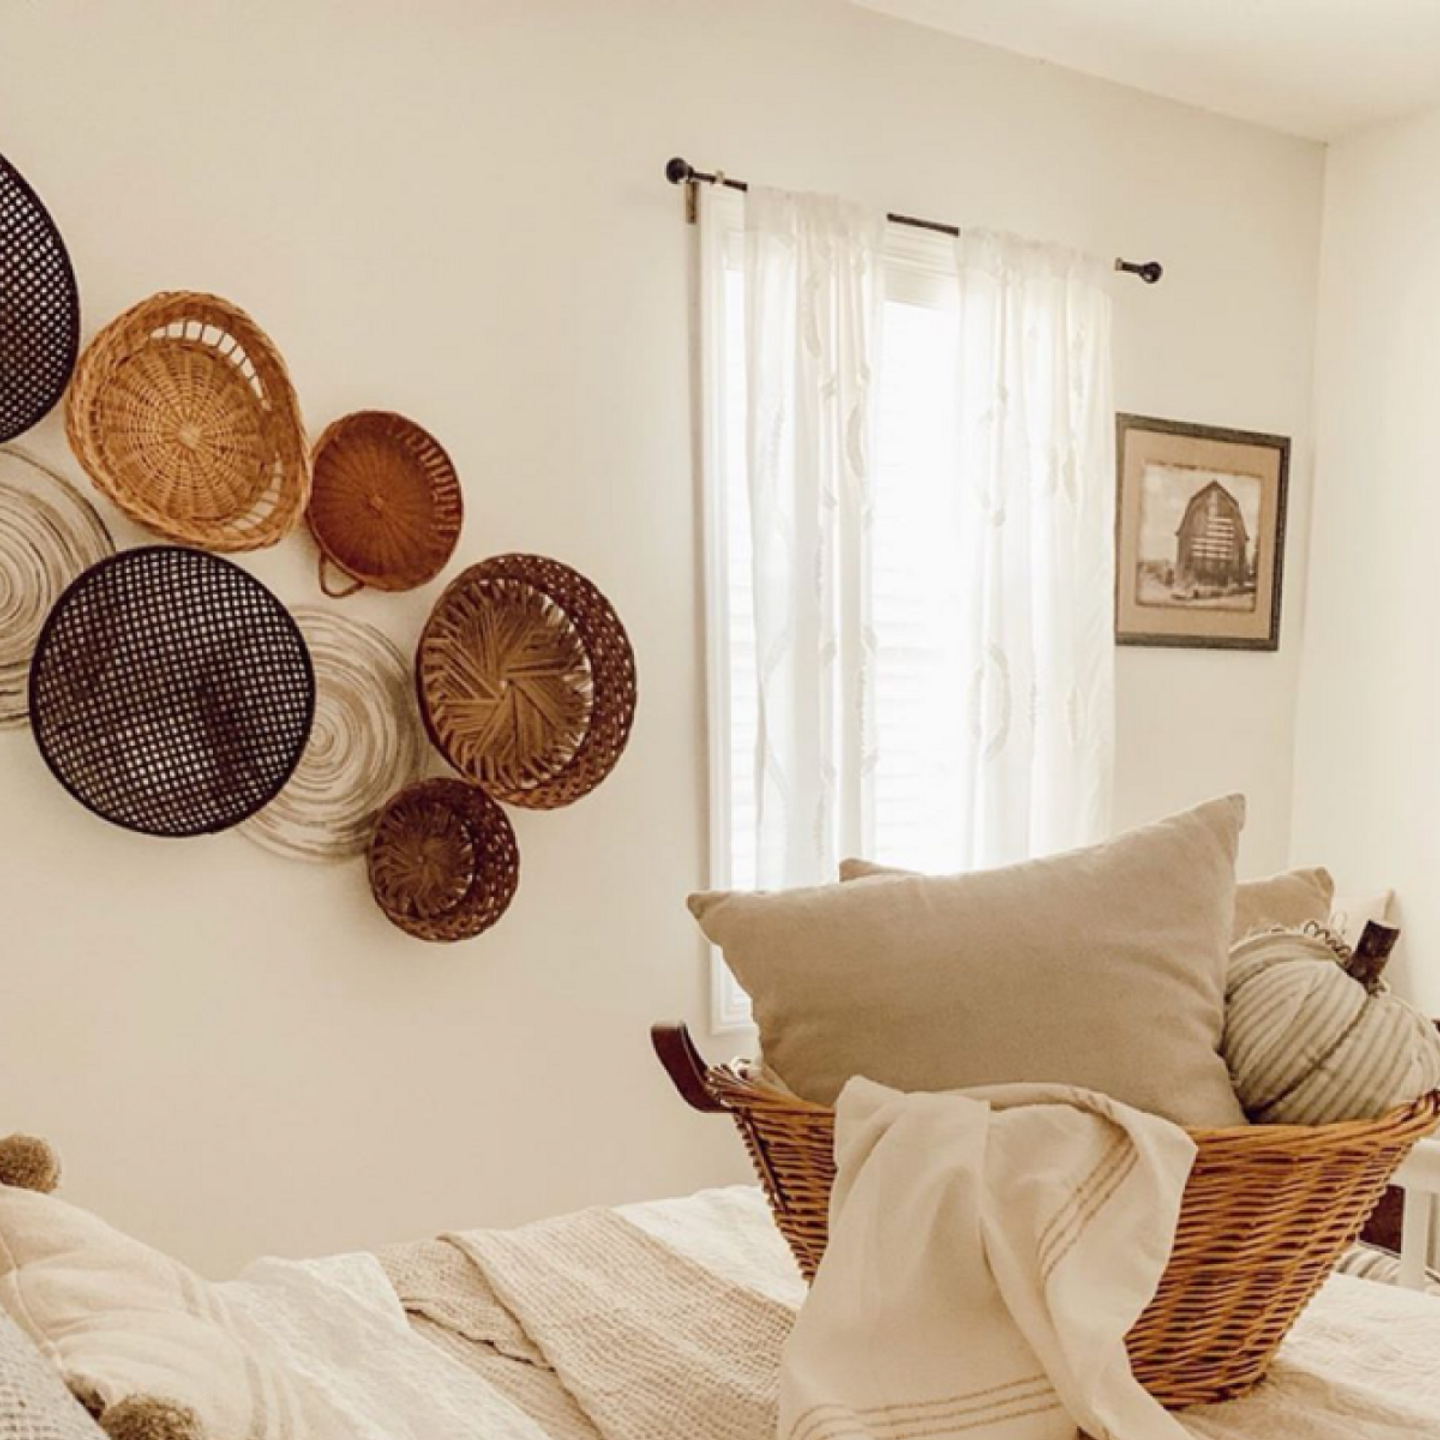 Home decor innovator experiences 114% revenue growth in 8 months